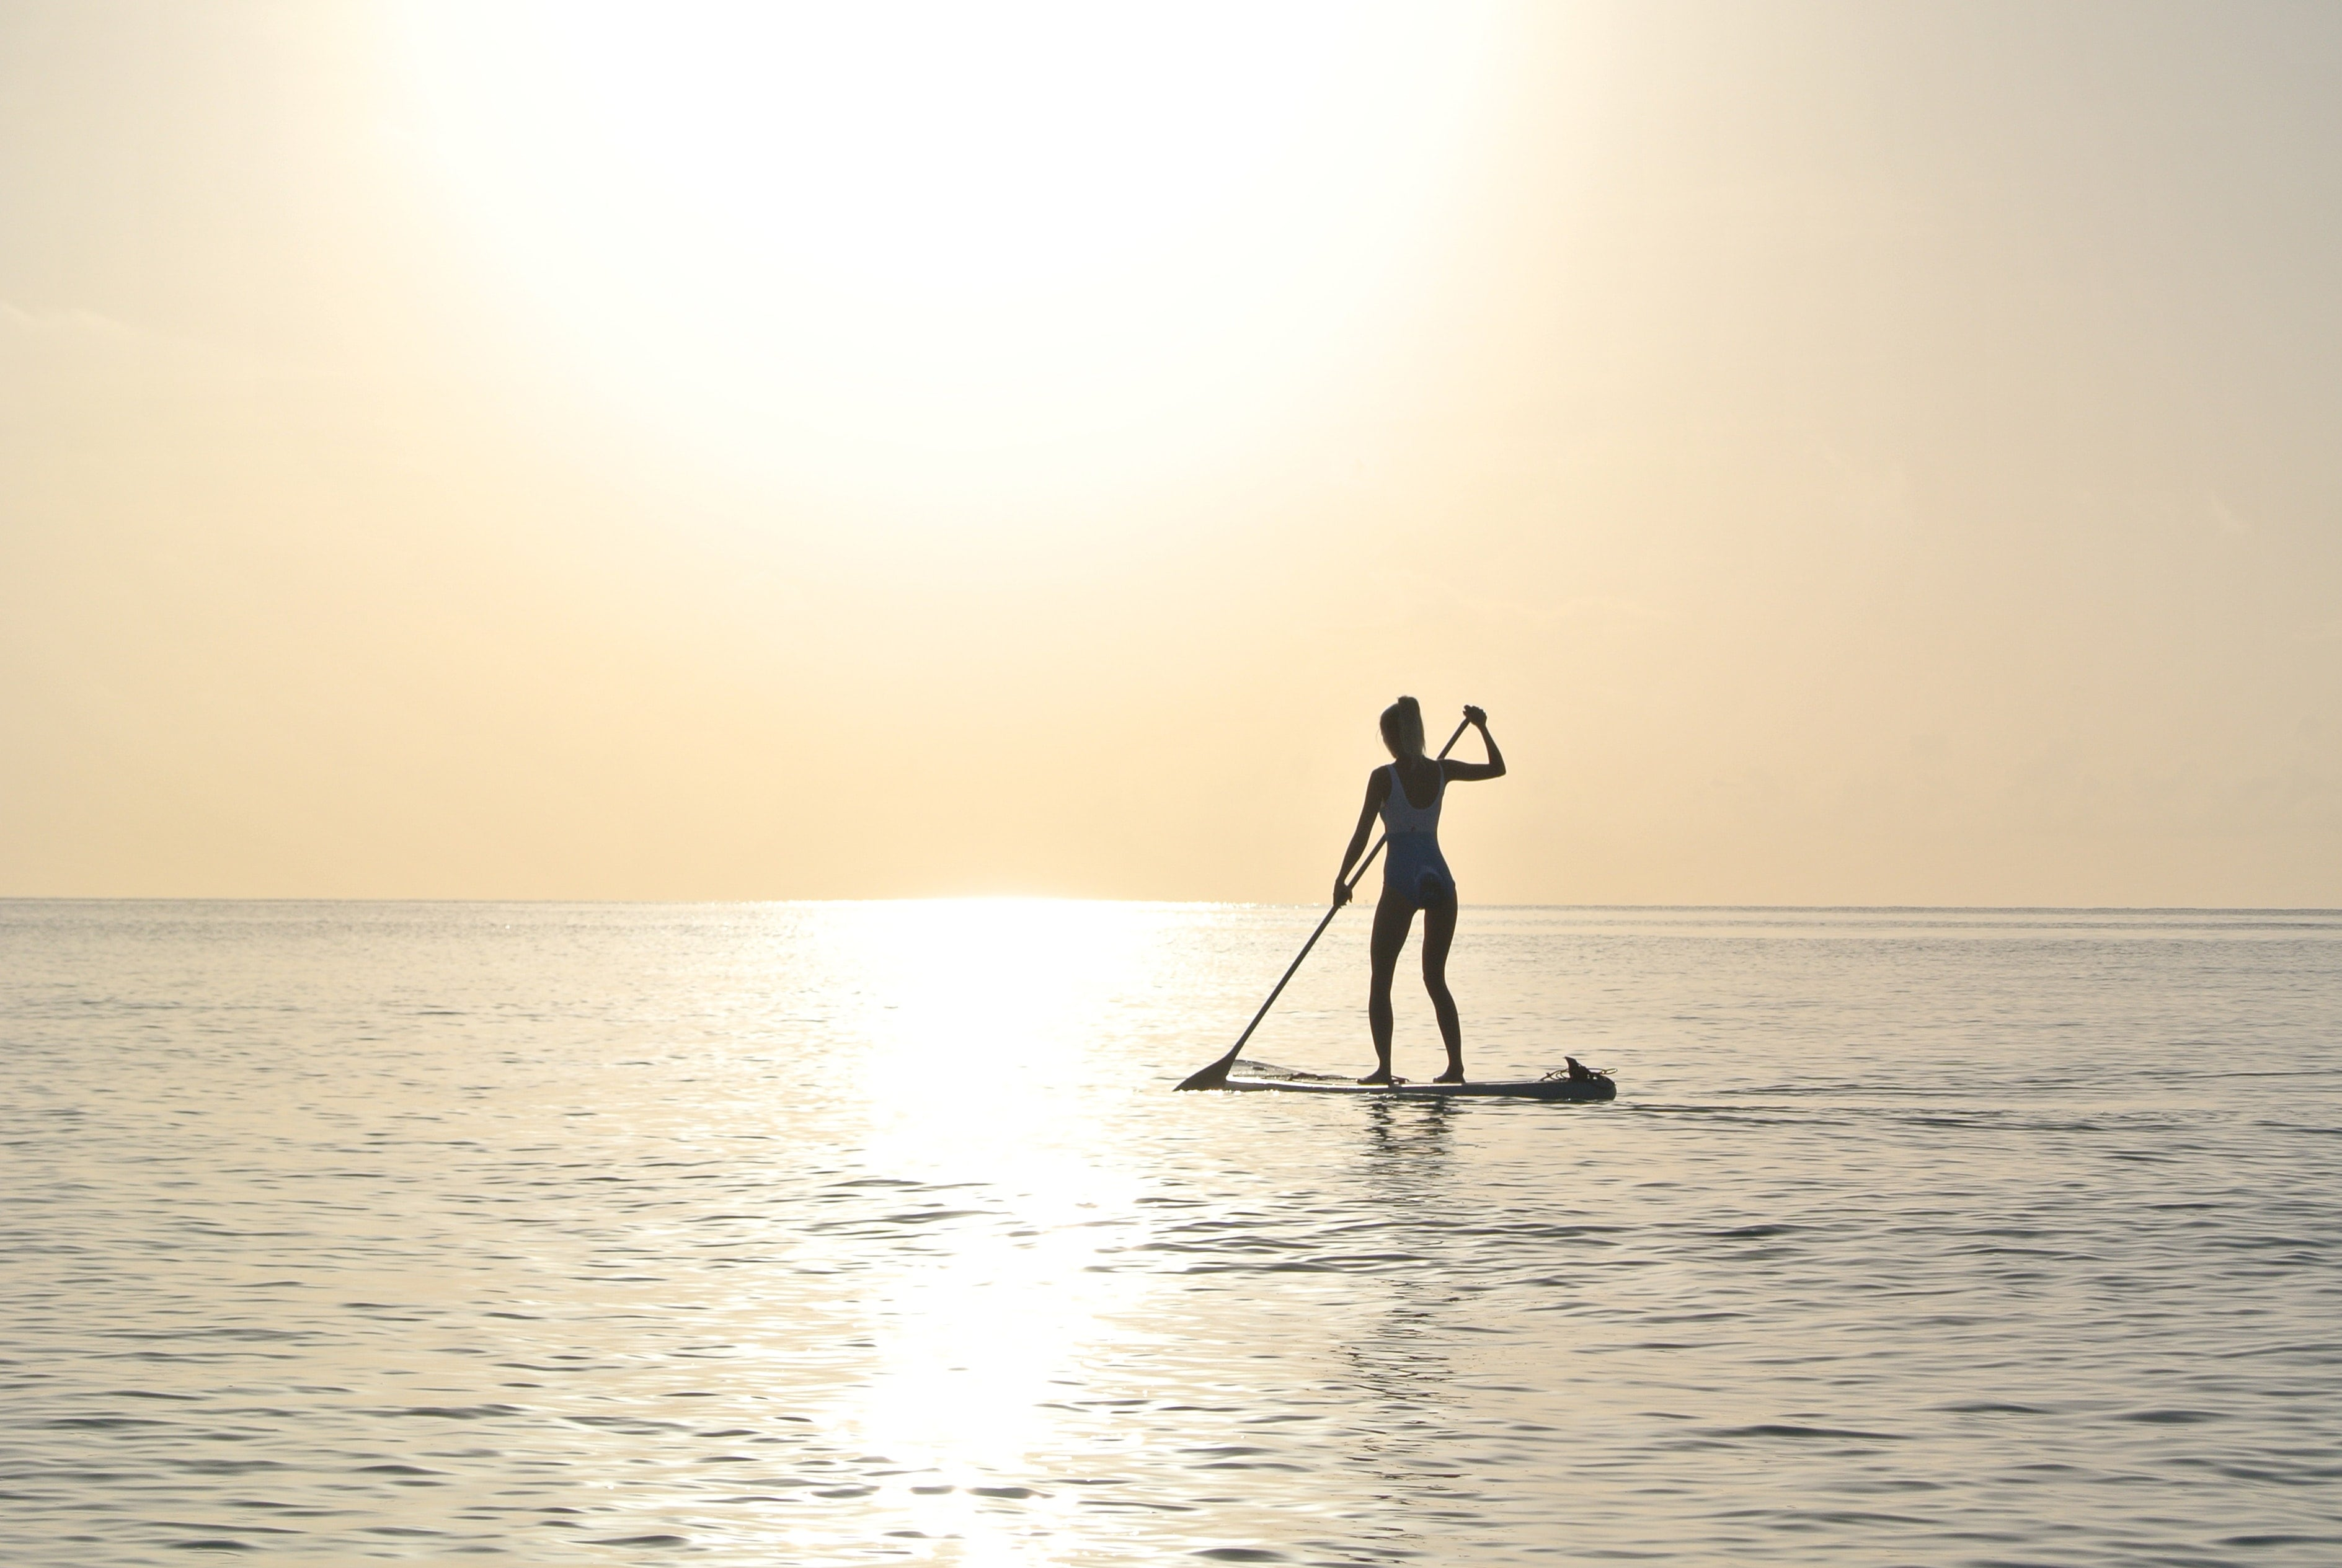 An image of a girl stood on a paddleboard in Australia, a country famous for travelling and gap years